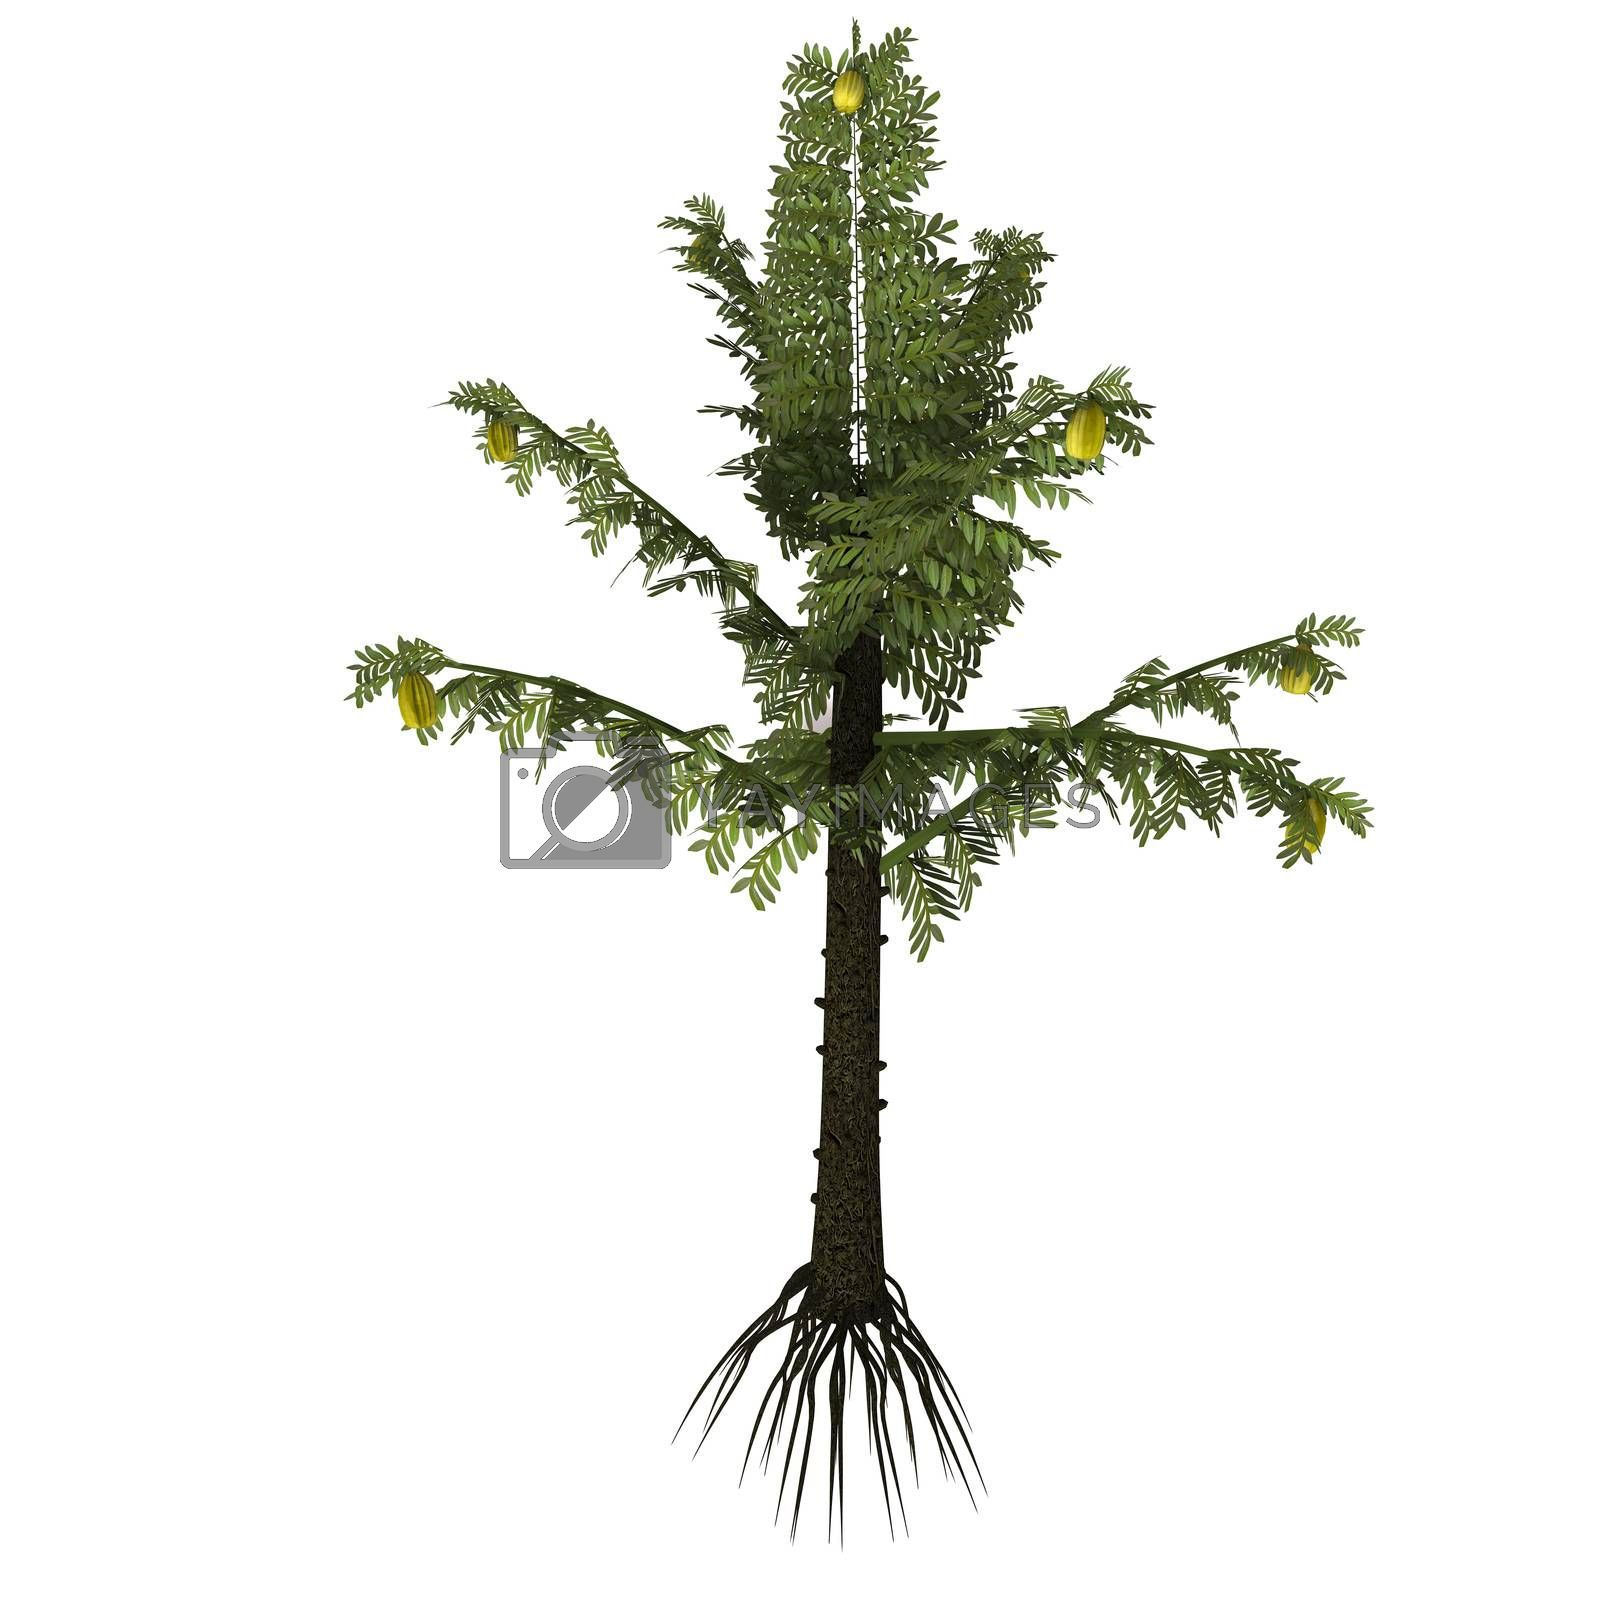 Alethopteris is a prehistoric plant genus of seed fern that existed in the Carboniferous Period.